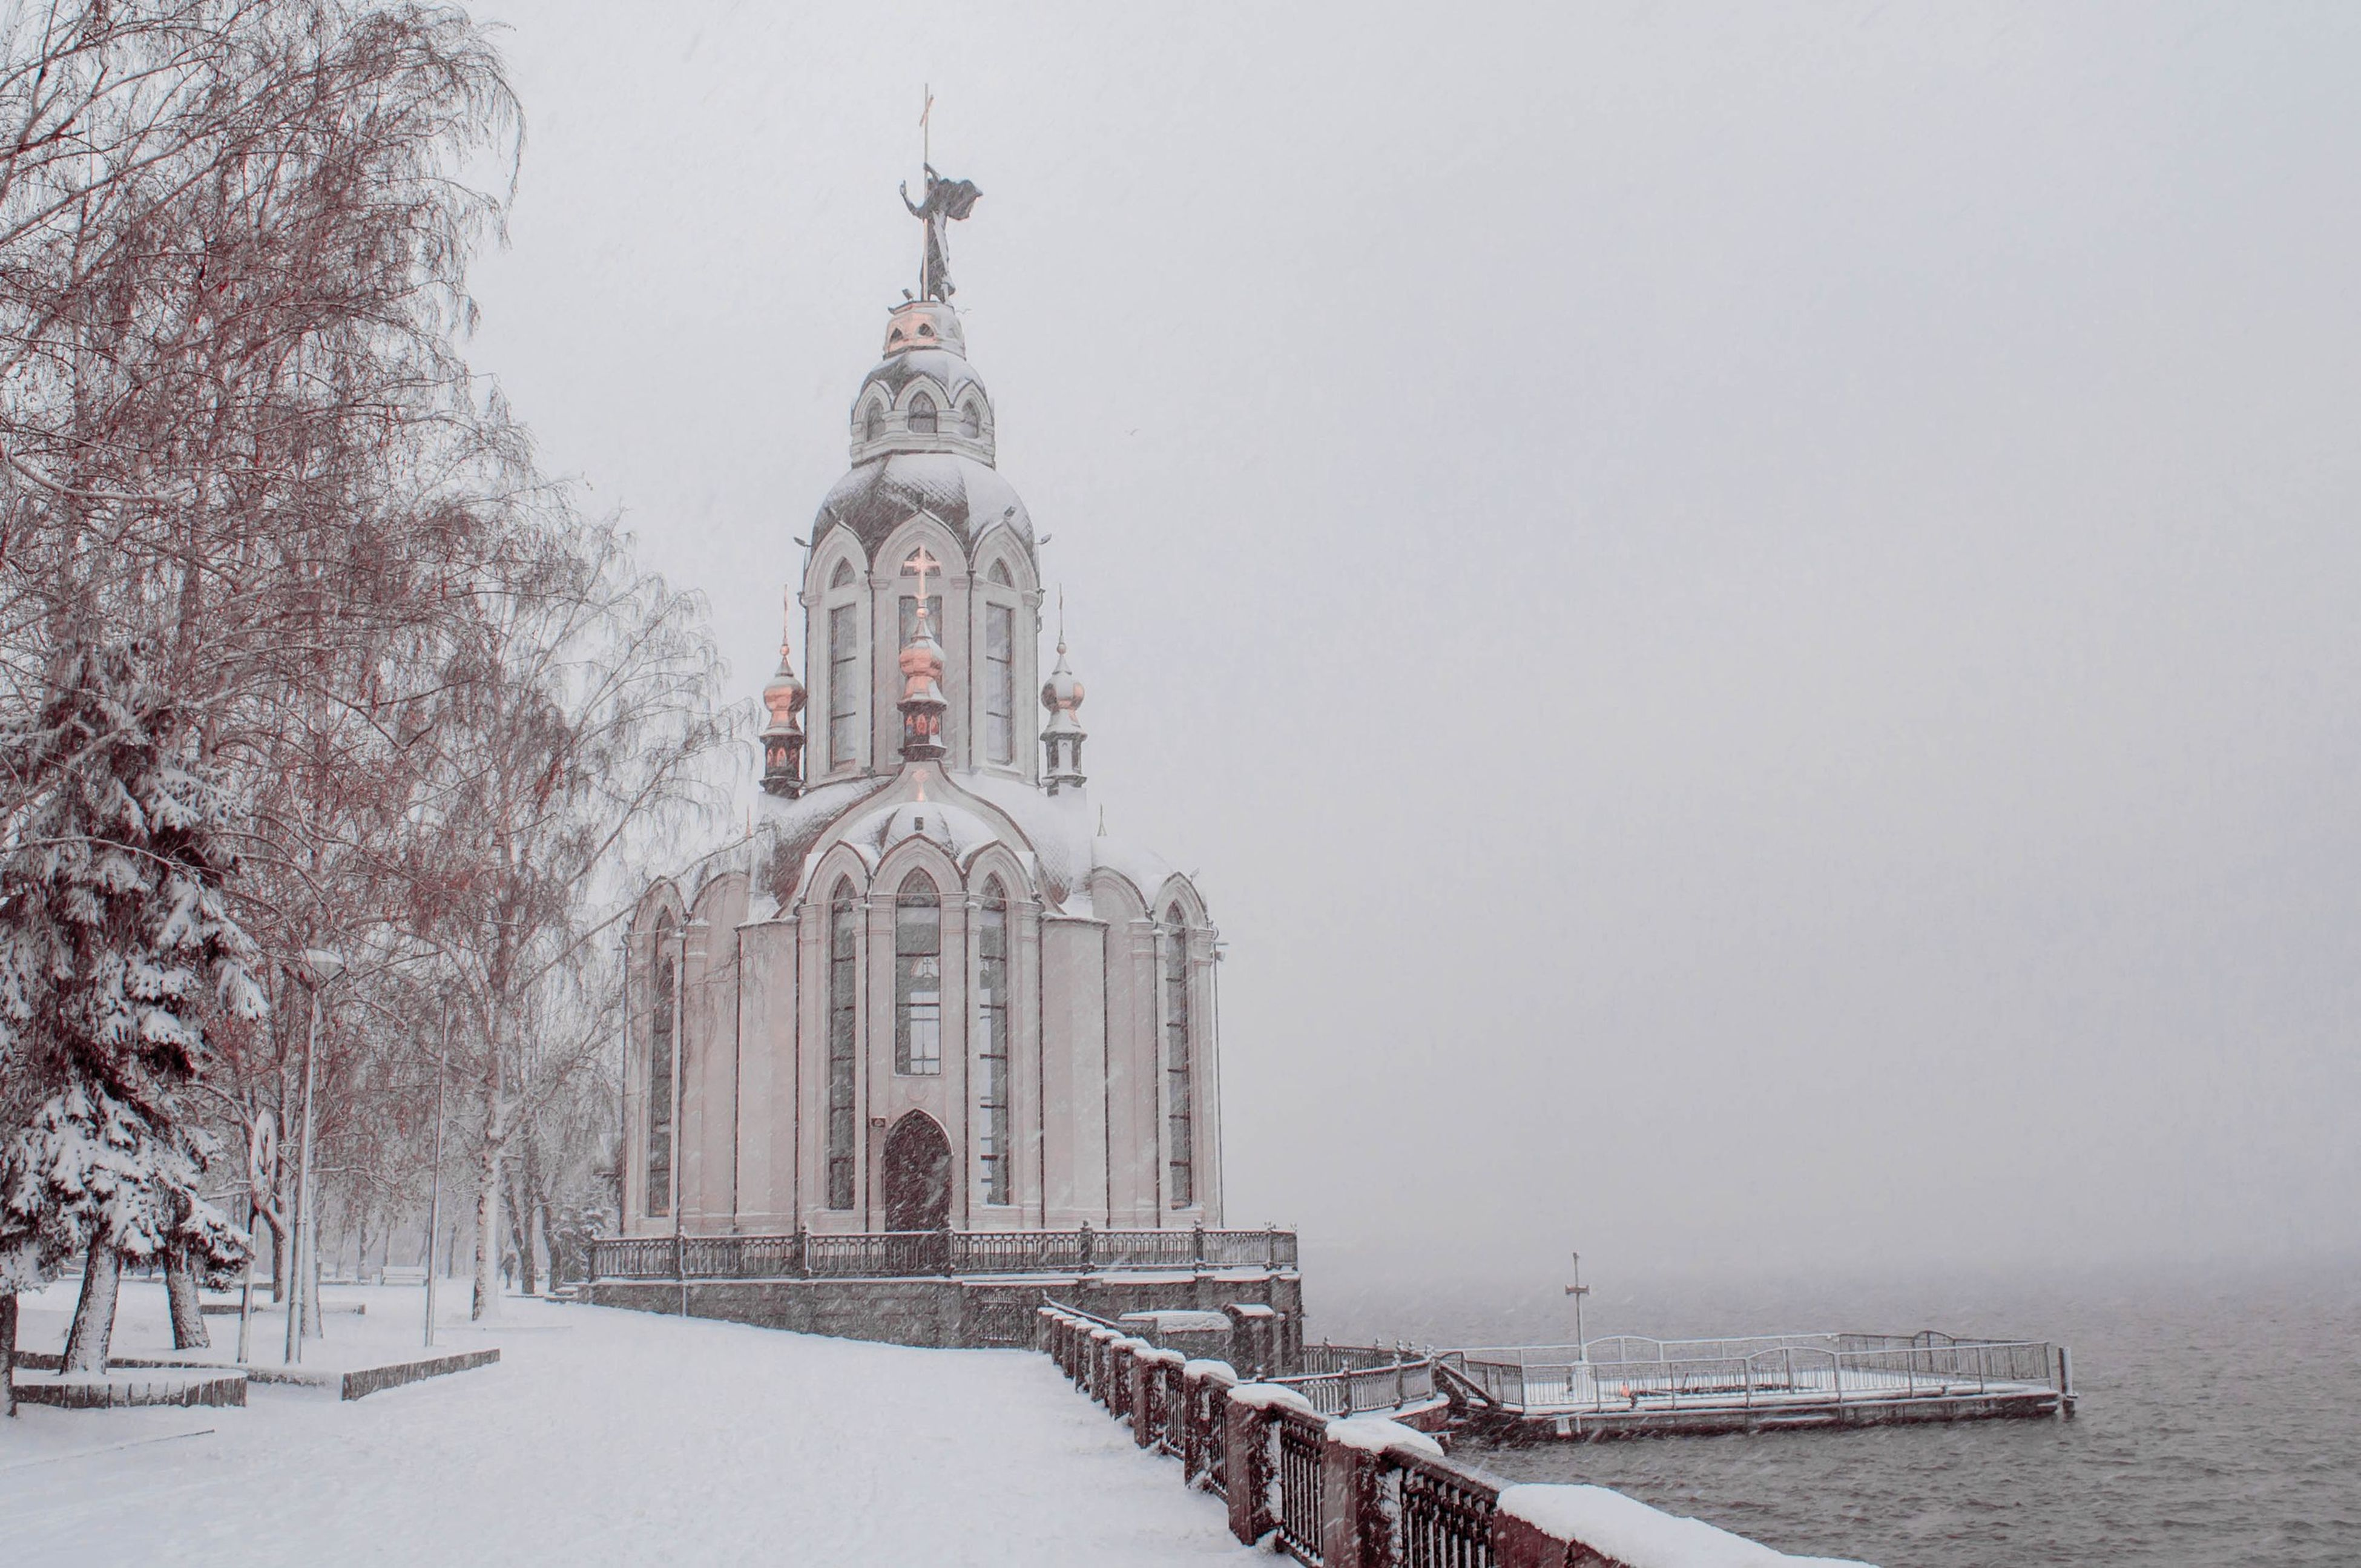 architecture, built structure, building exterior, clear sky, winter, snow, cold temperature, water, place of worship, religion, season, copy space, church, travel destinations, tower, spirituality, famous place, travel, day